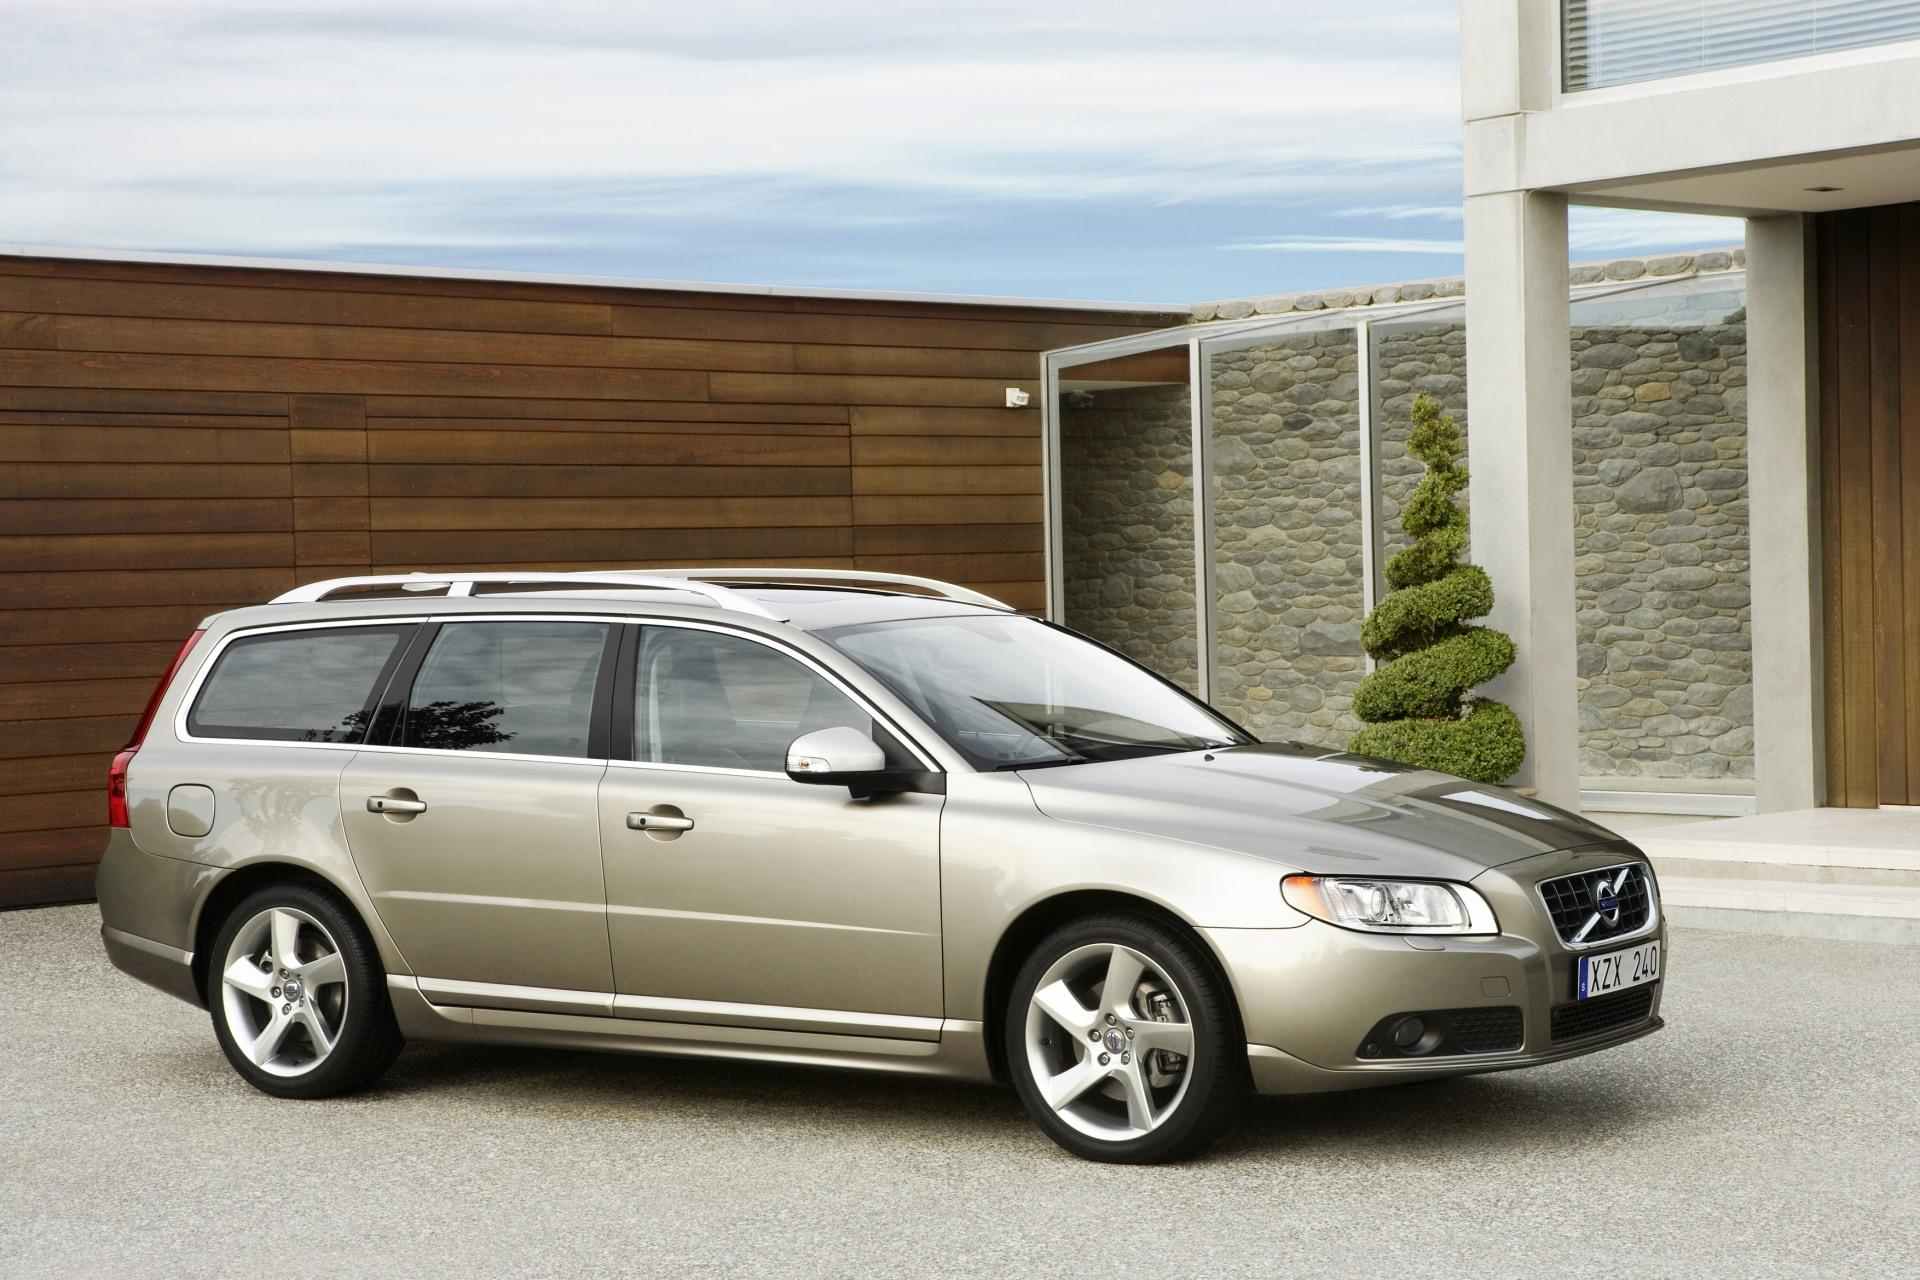 2011 volvo v70. Black Bedroom Furniture Sets. Home Design Ideas